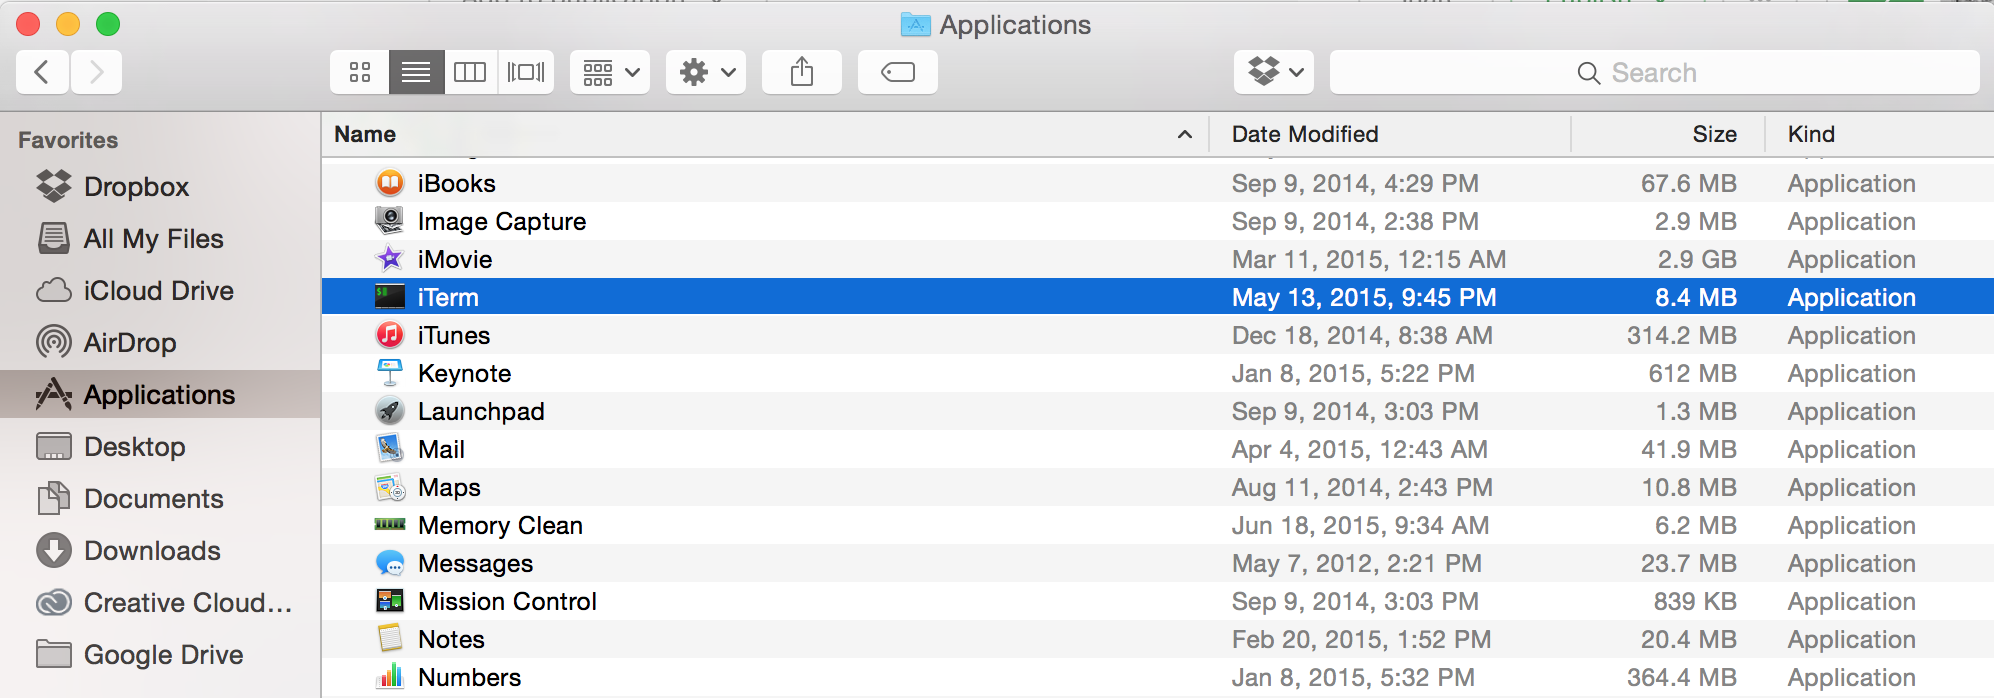 5 steps to improve your terminal appearance on Mac OSX